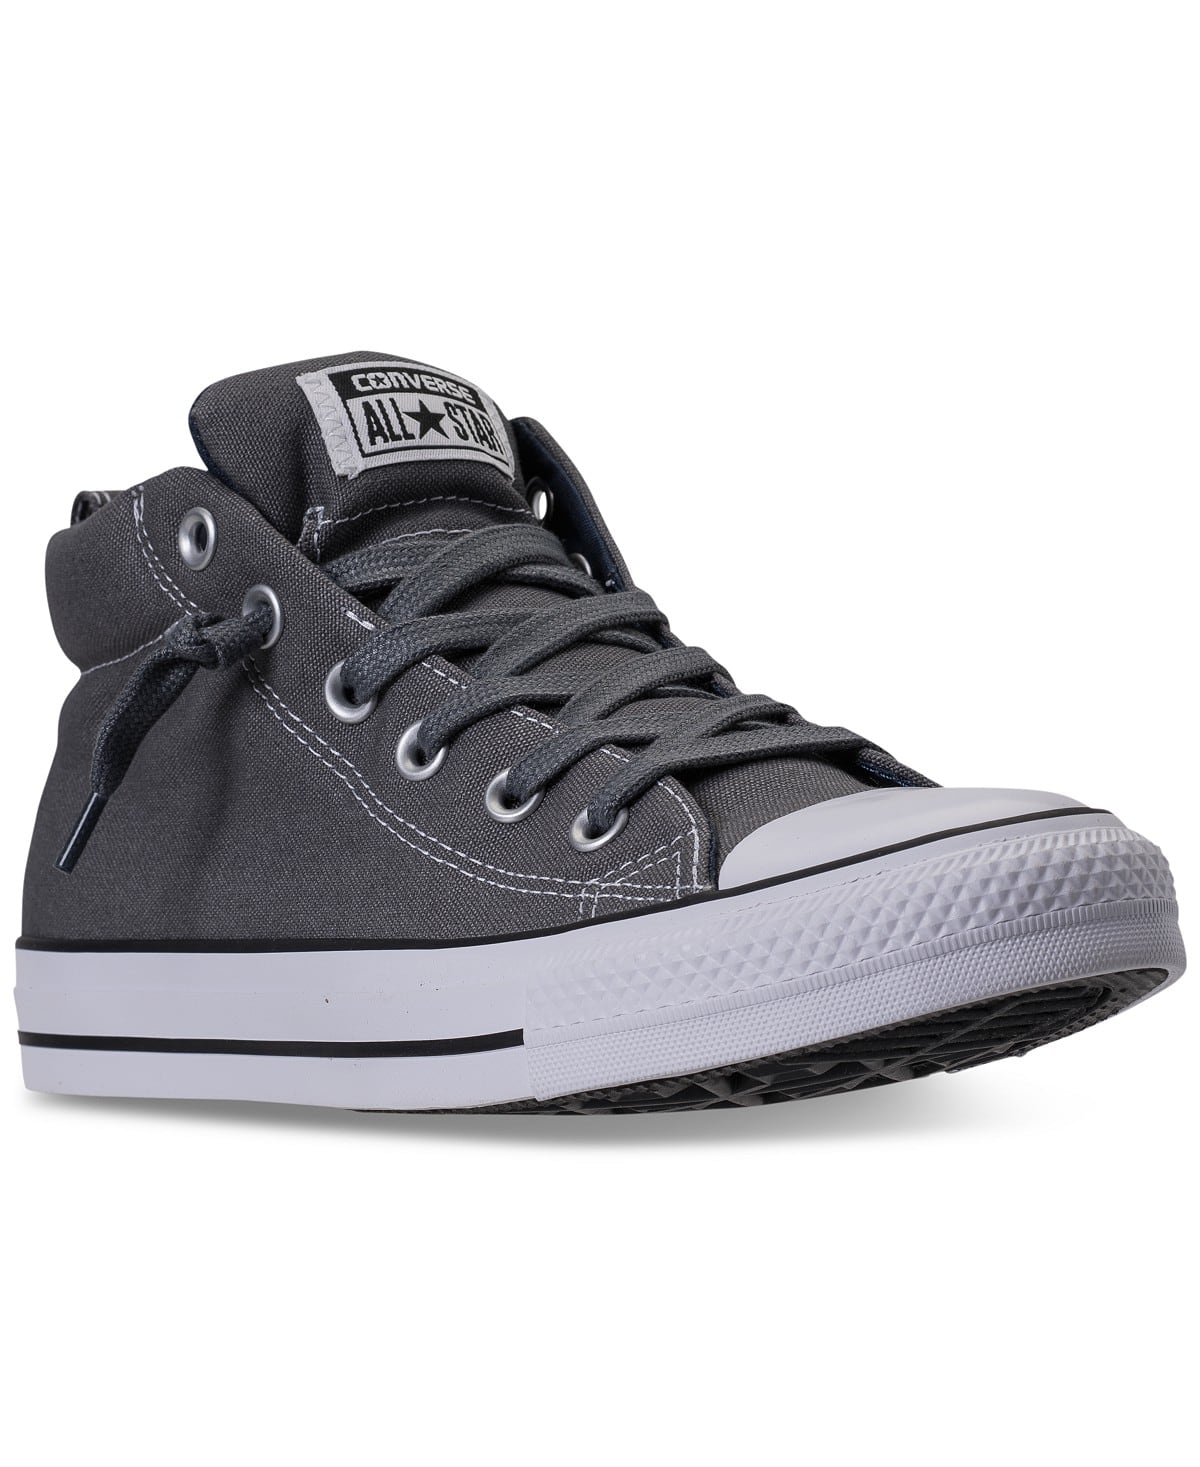 eaae0df038be Converse Men s Chuck Taylor All Star Street Mid Casual Sneakers from Finish  Line  35